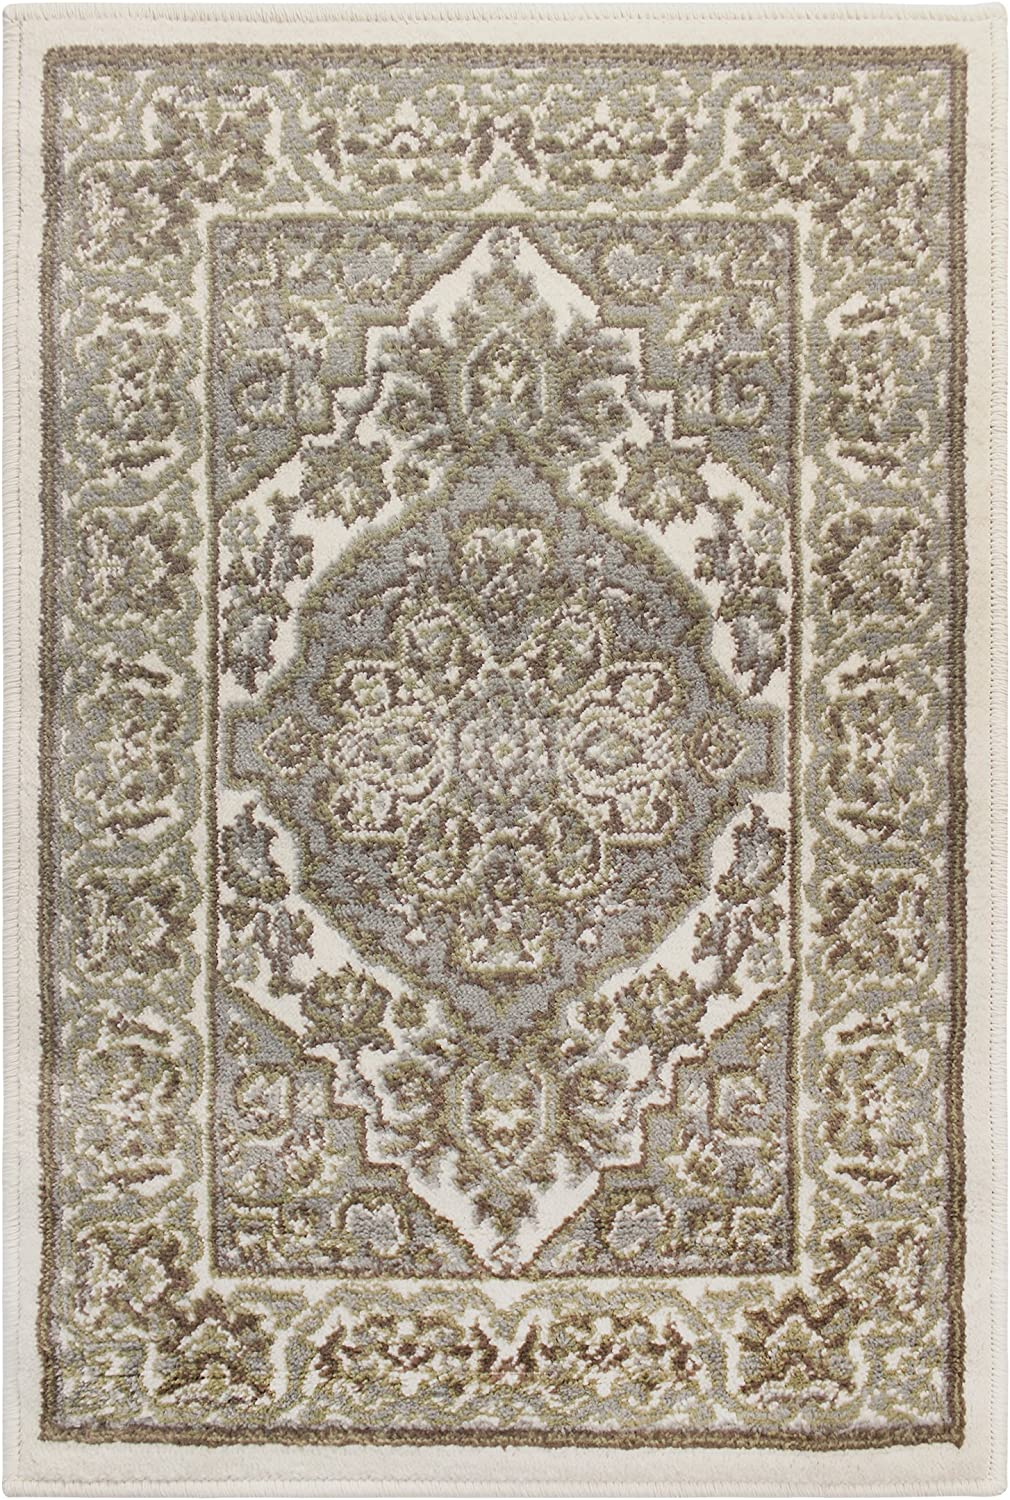 SUPERIOR Glendale Collection Area Rug - Traditional Brown Oriental Rug, 8 mm Pile, Jute Backing Floor Rug, Green, 2' x 3'